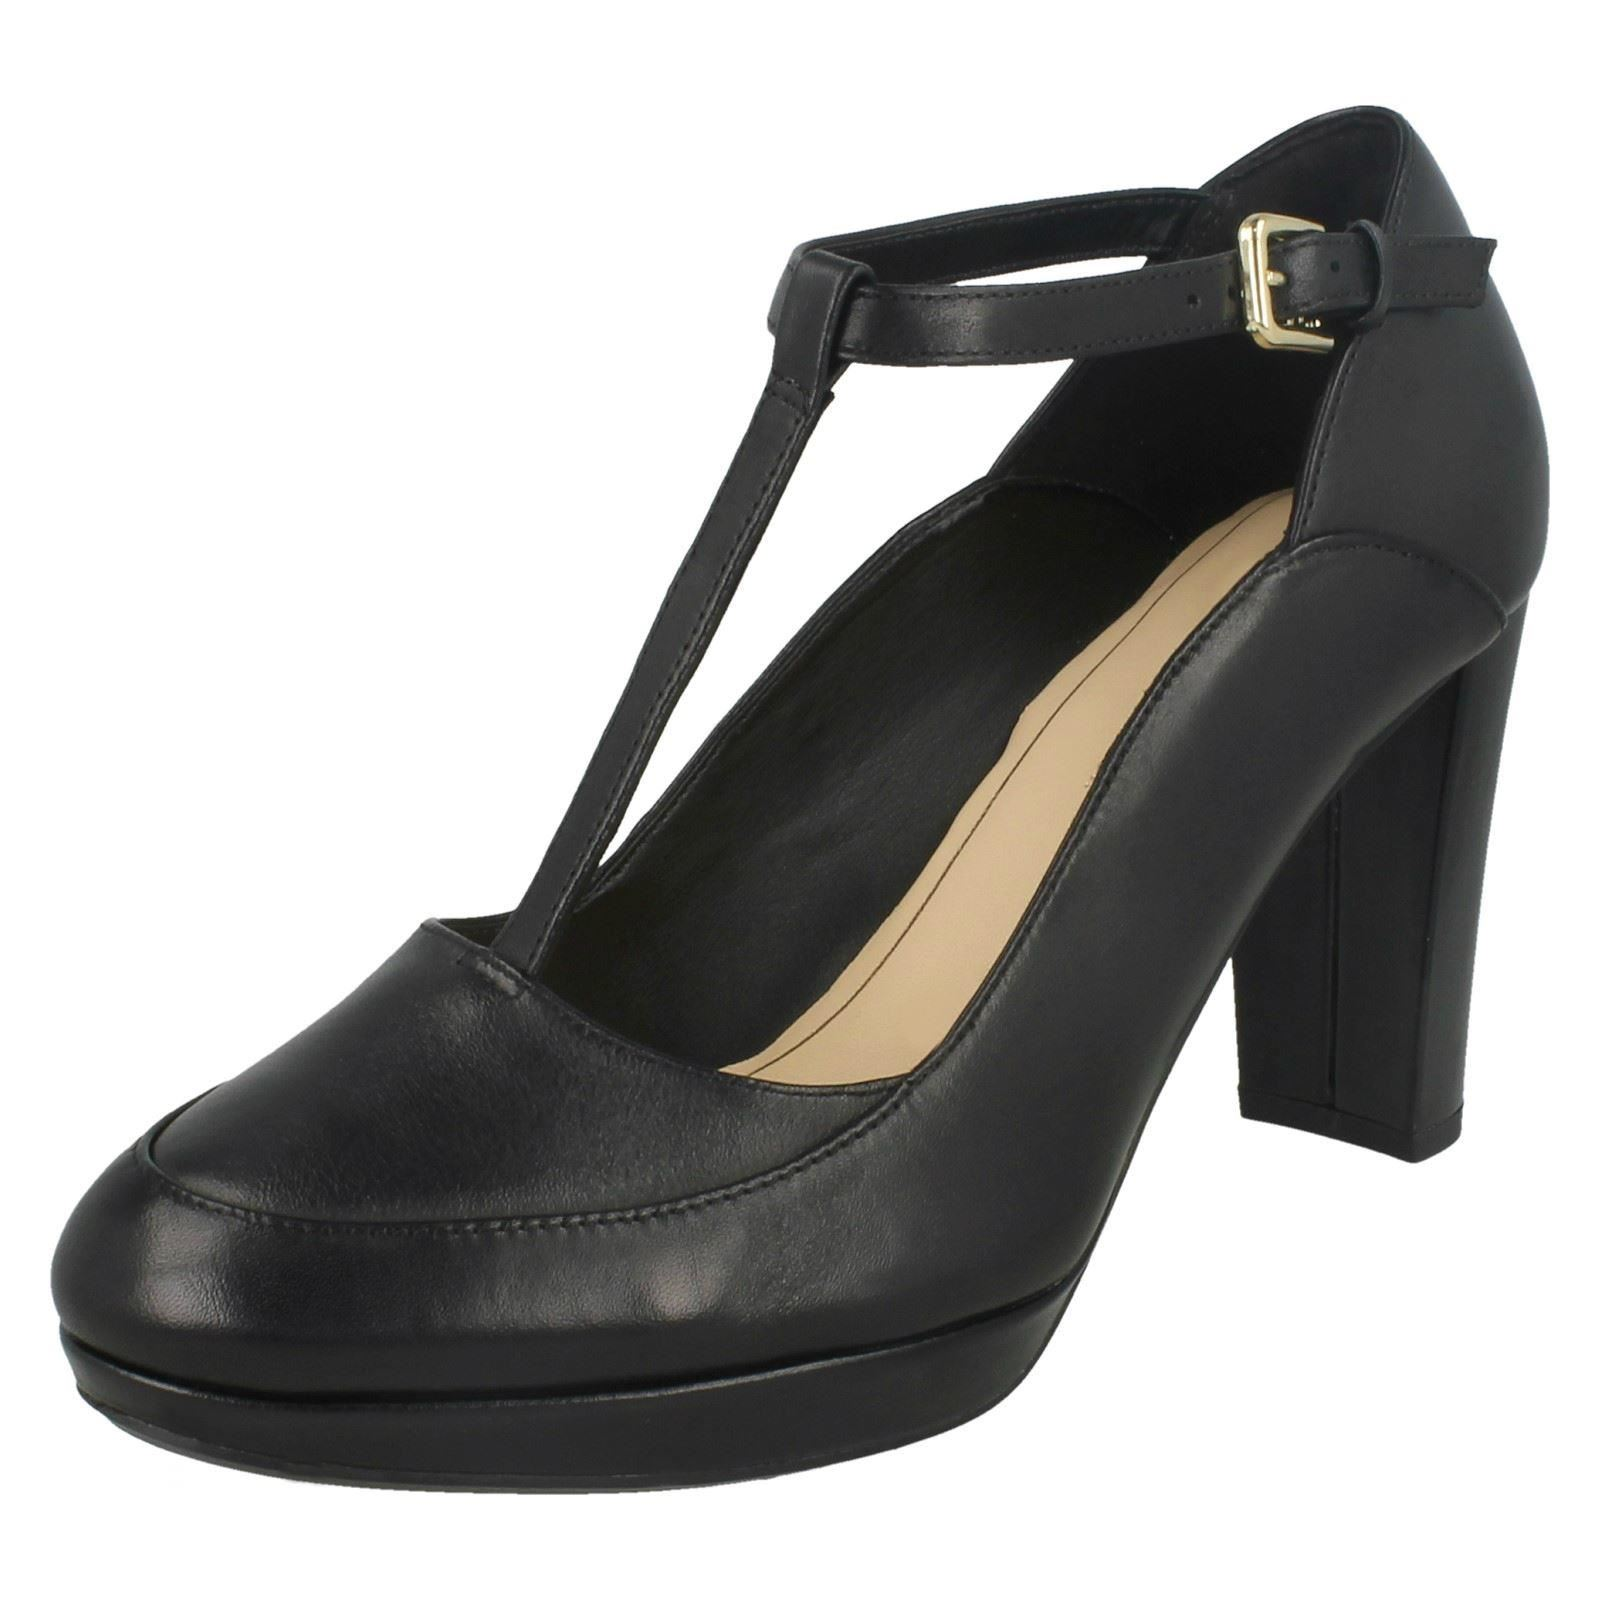 Black T Bar Shoes Mid Heel